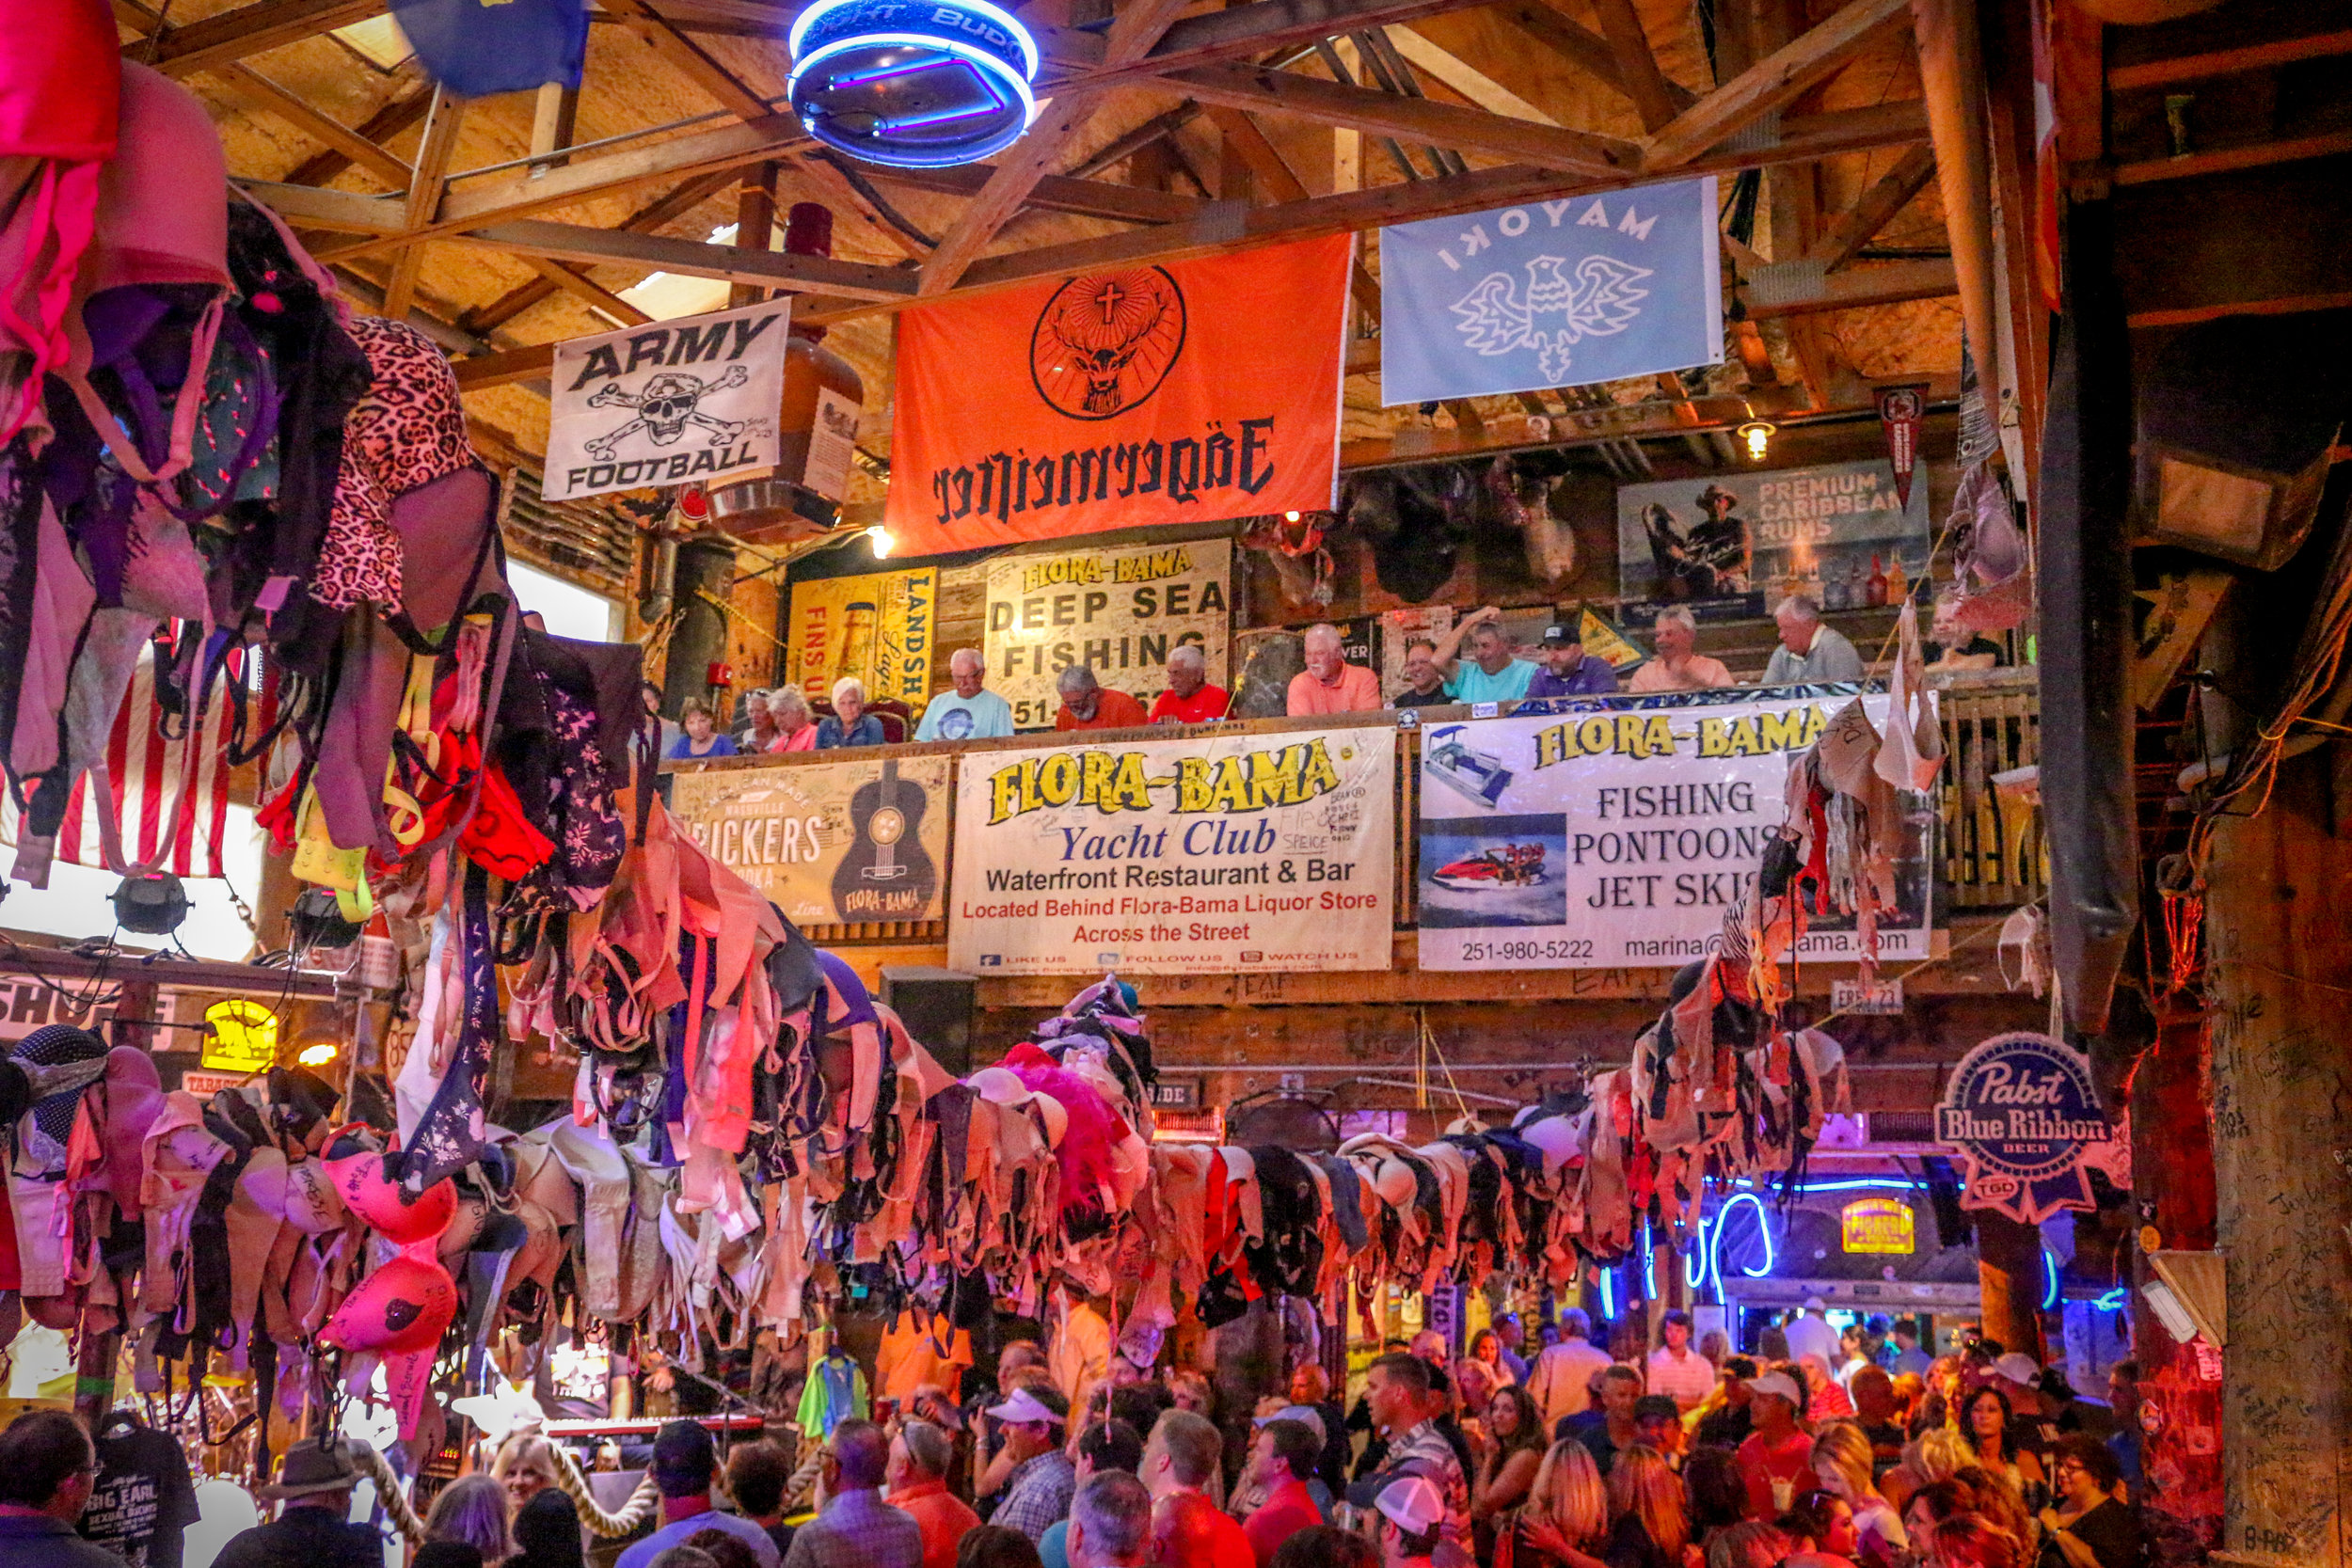 Under the Bras at Flora-Bama